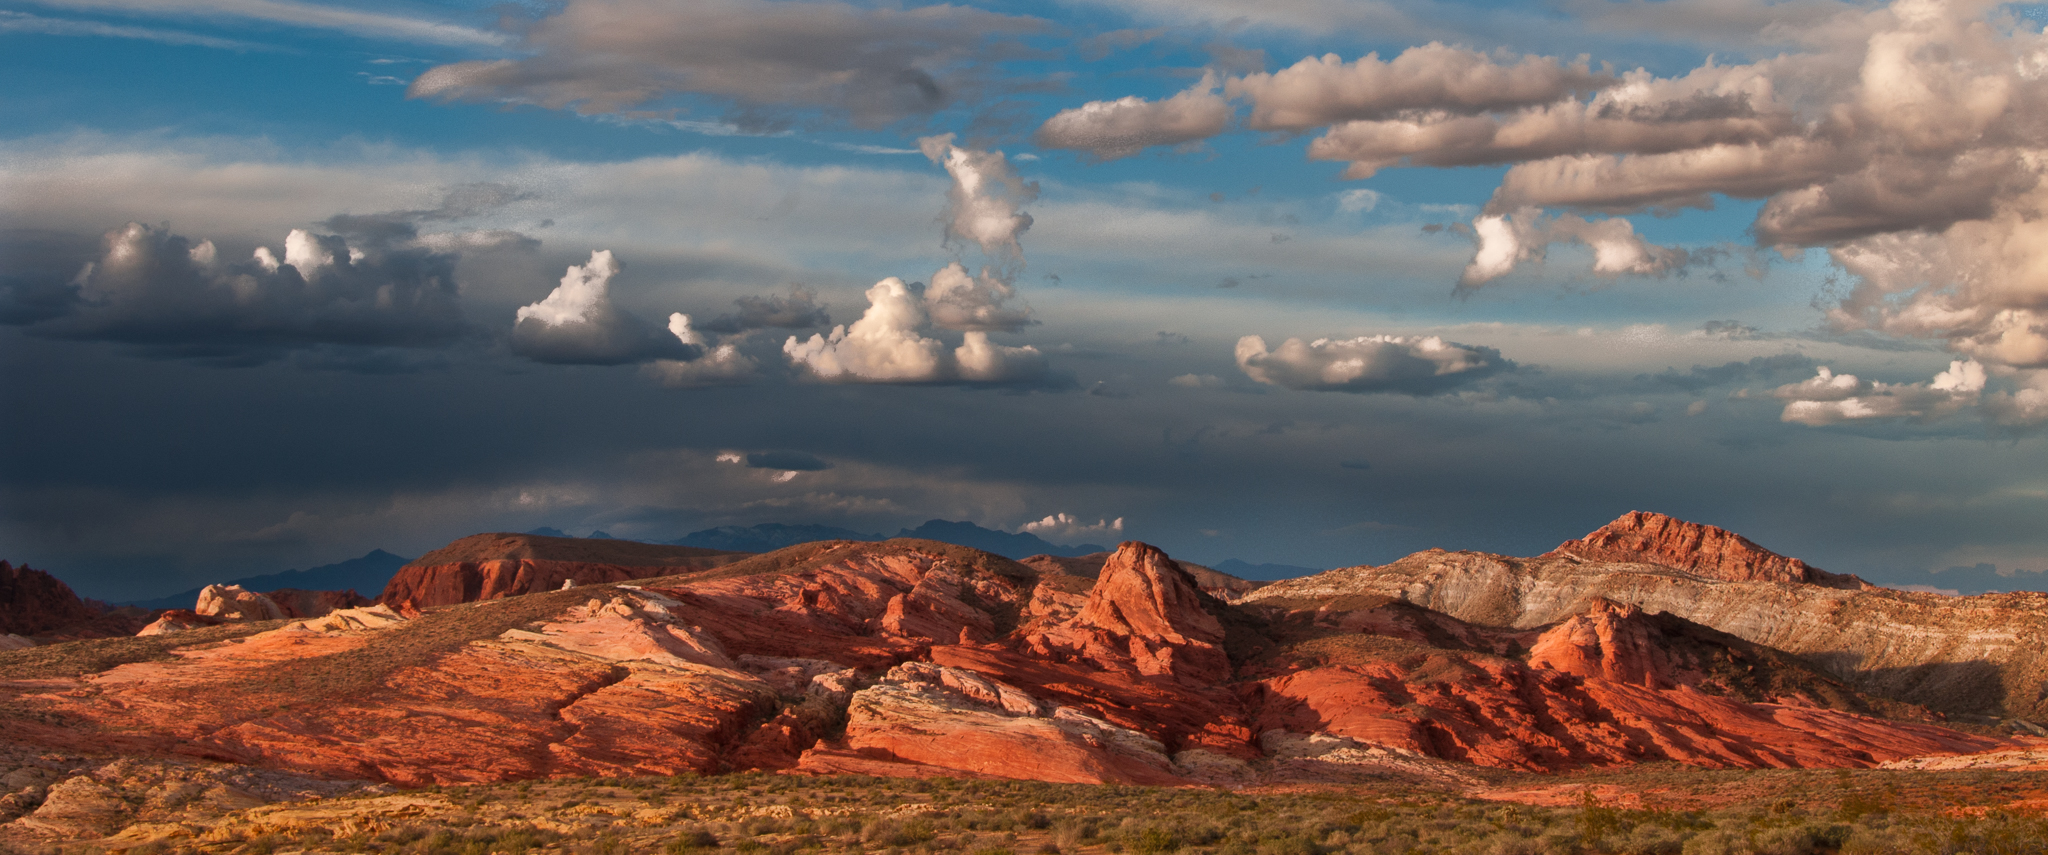 Valley of Fire 2011-00578.jpg